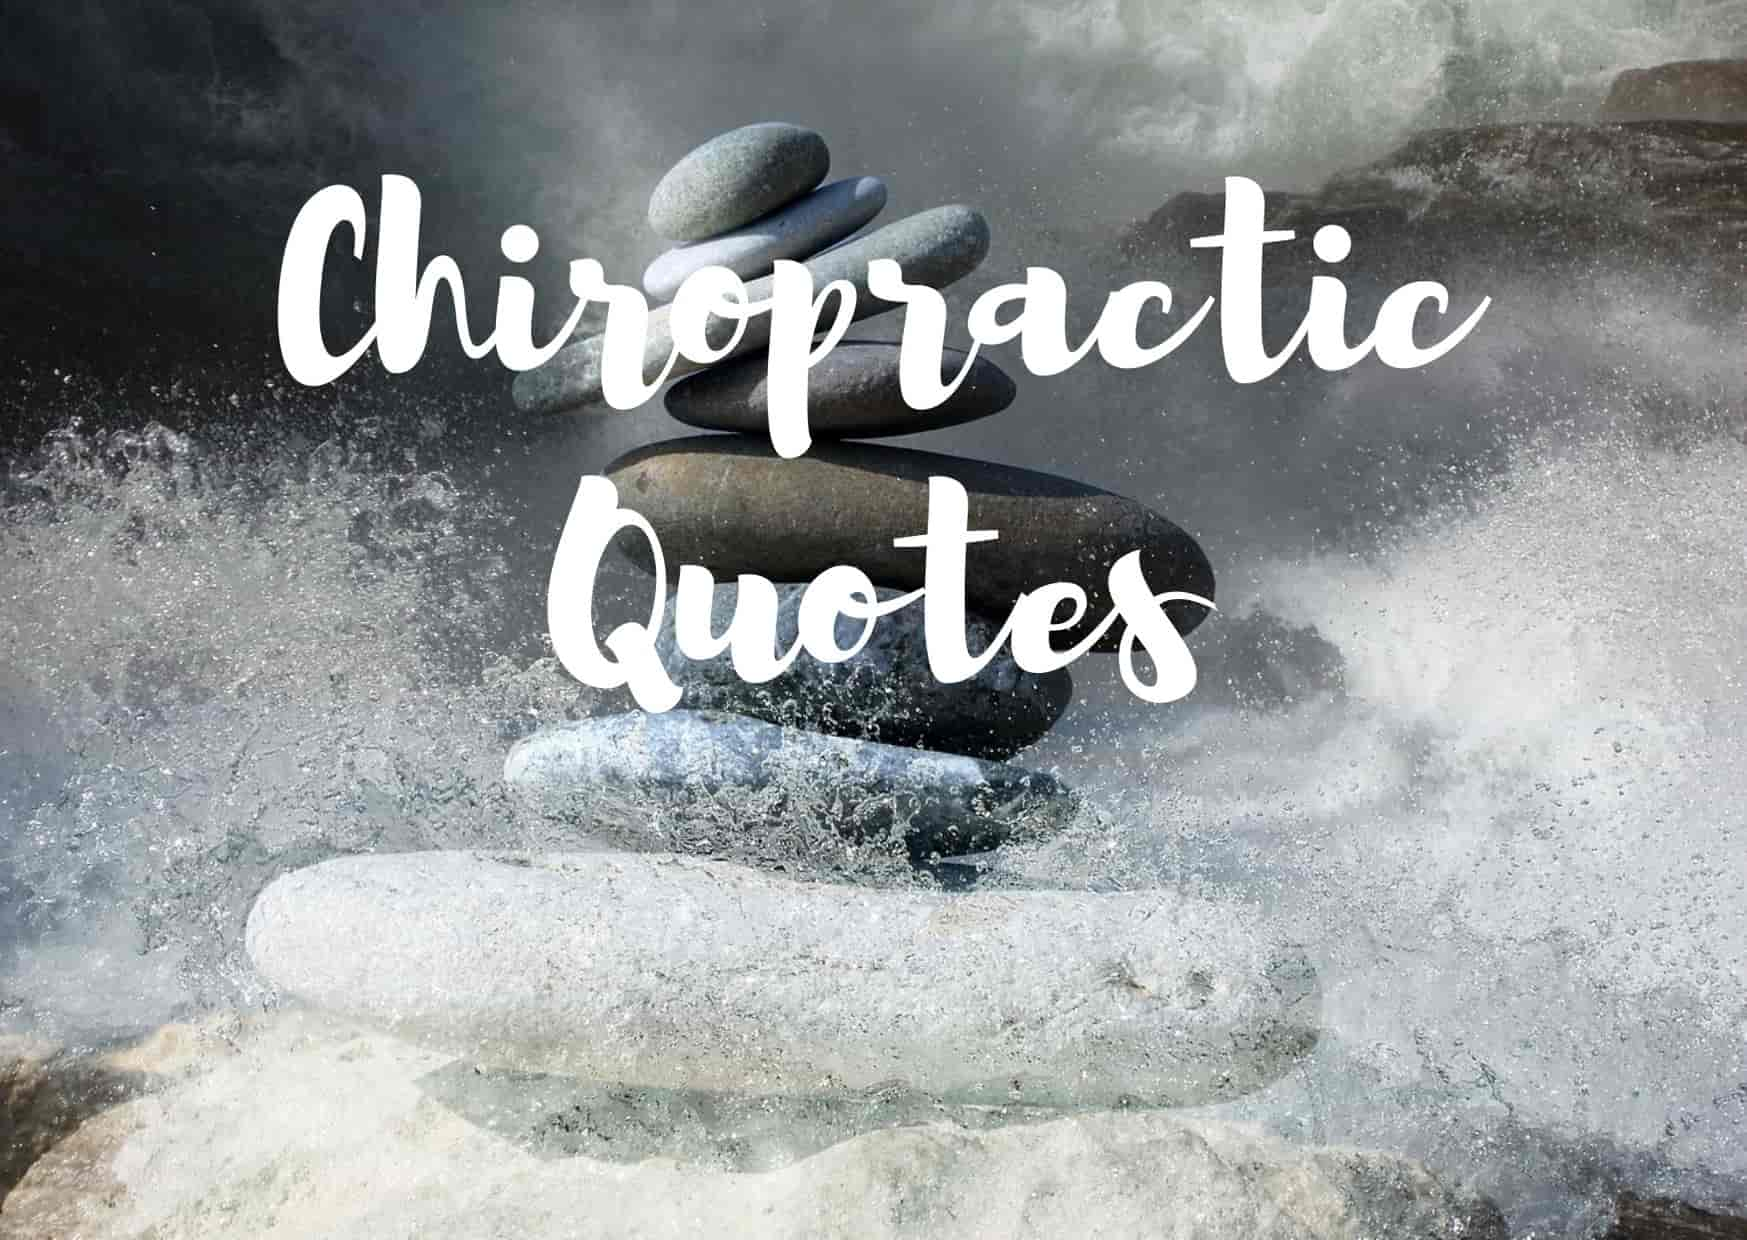 50 Best Chiropractic Quotes